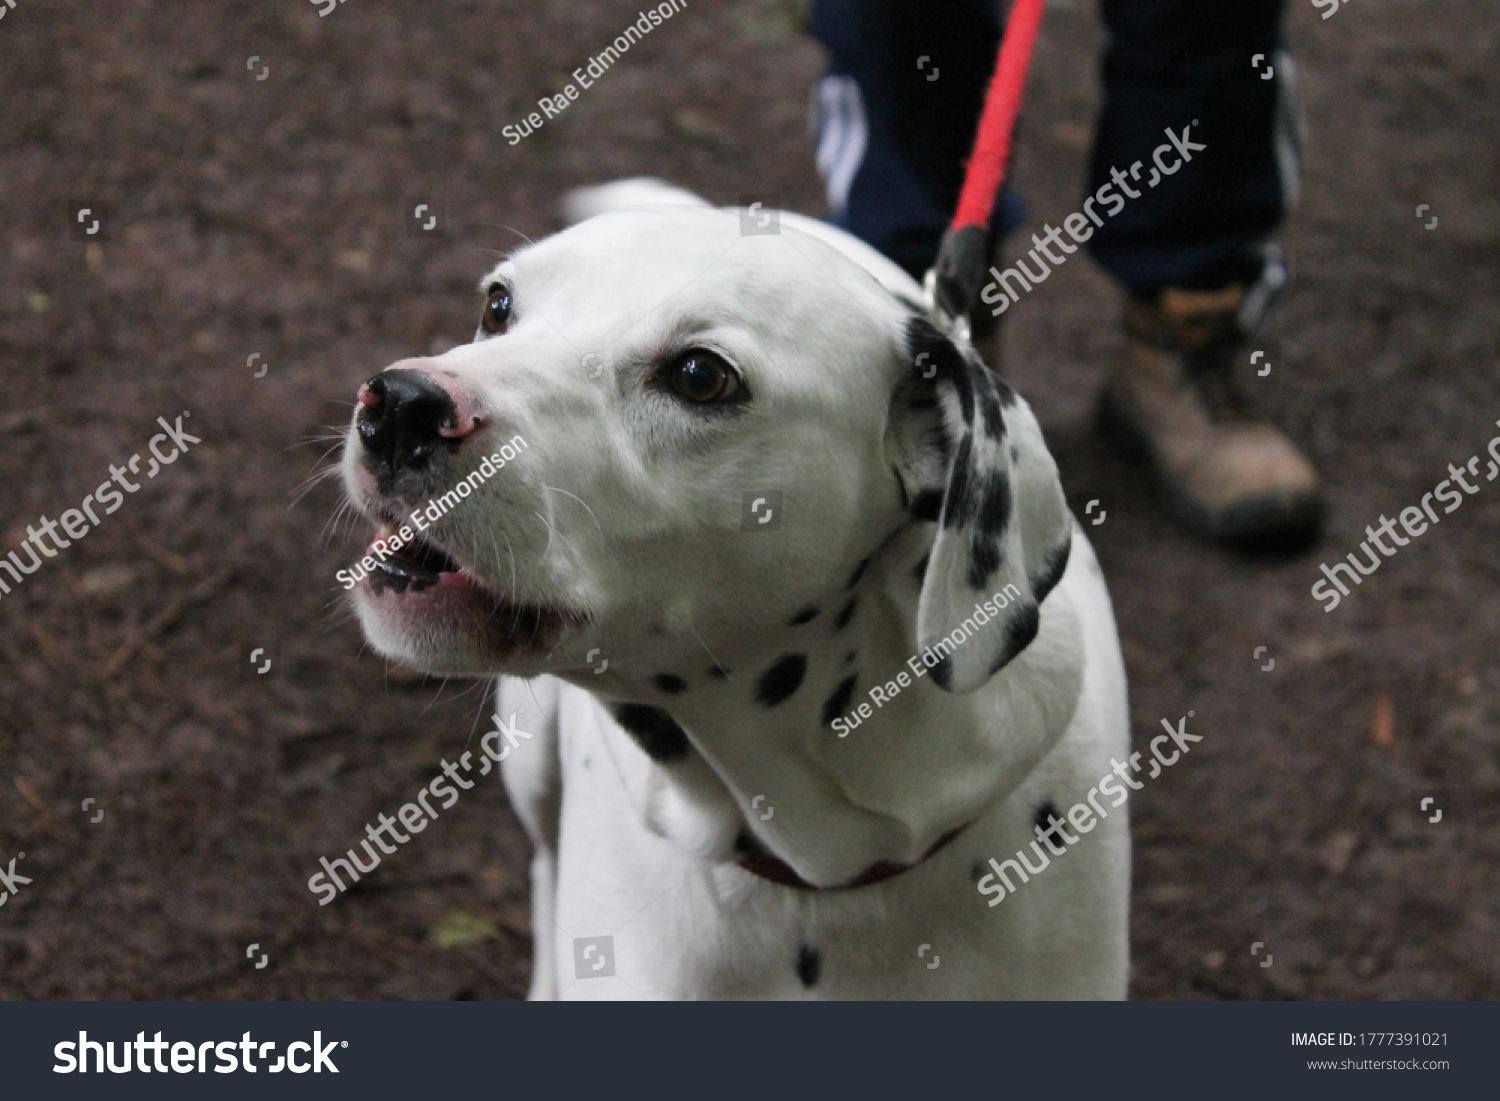 Dalmatian dog with mouth open due to barking